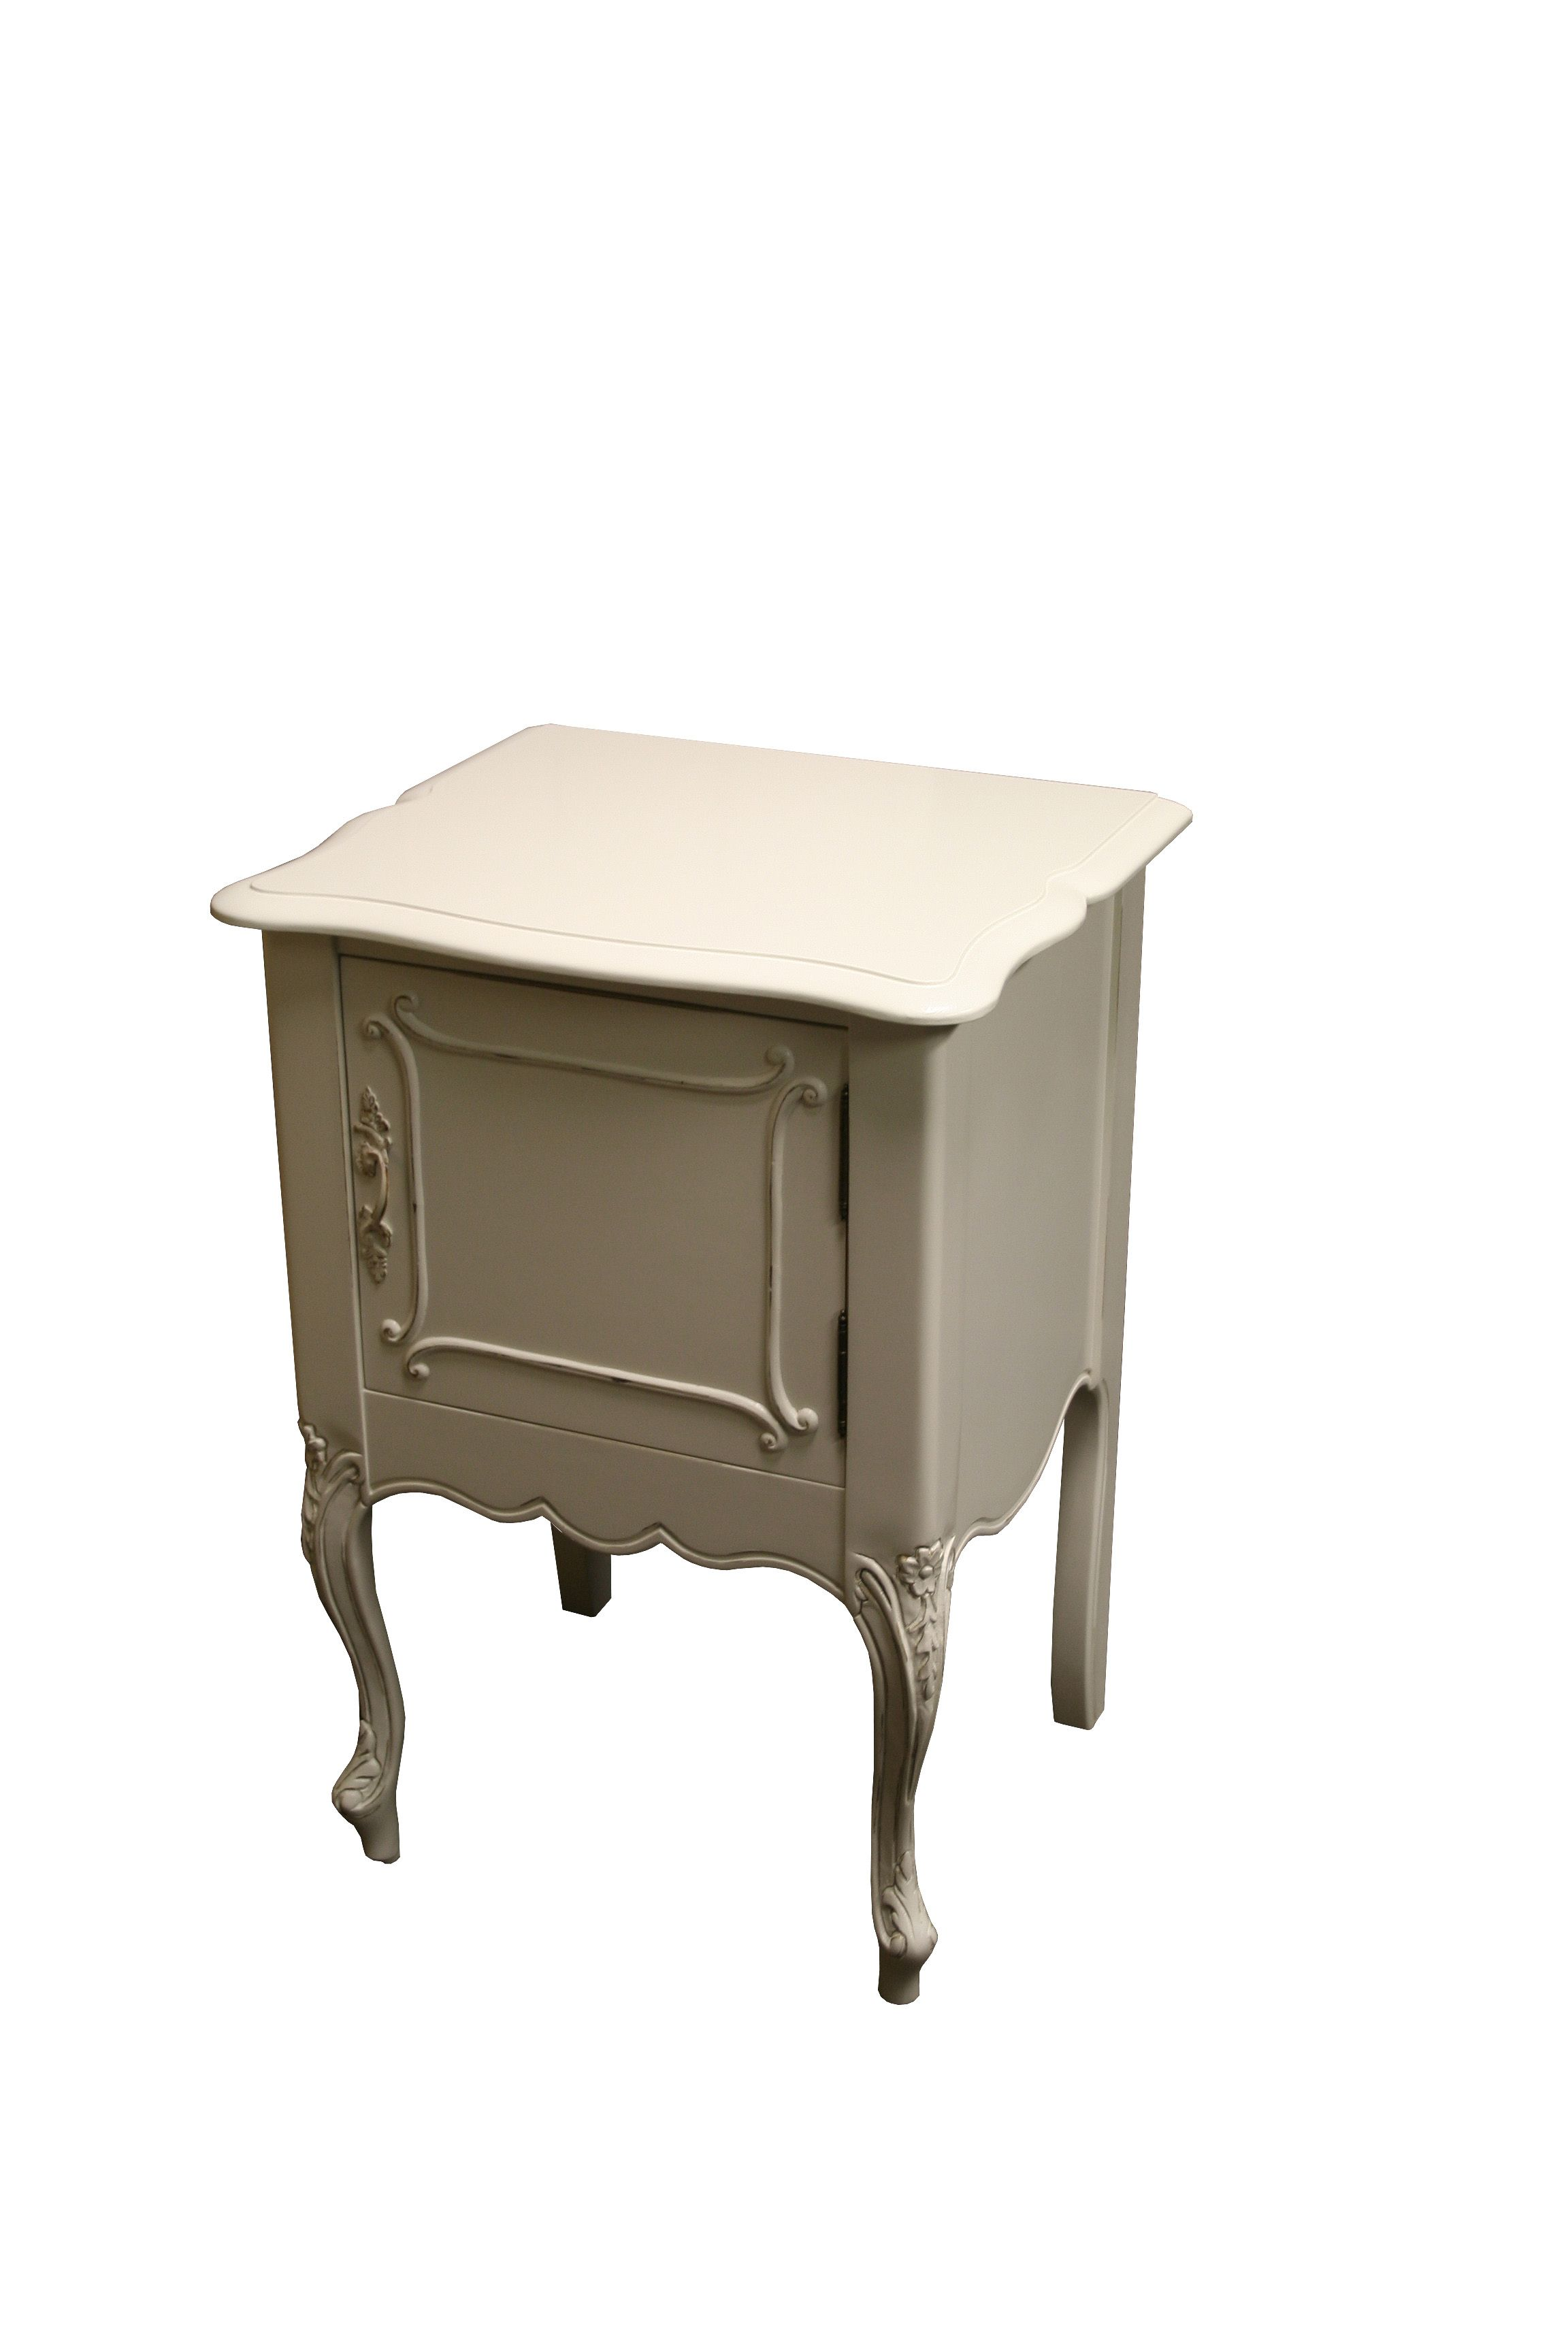 Buy Your Country French One Door Nightstand By Country Cottage Here. This  Country French One Door Nightstand From Country Cottage Features A Simple  Elegance ...